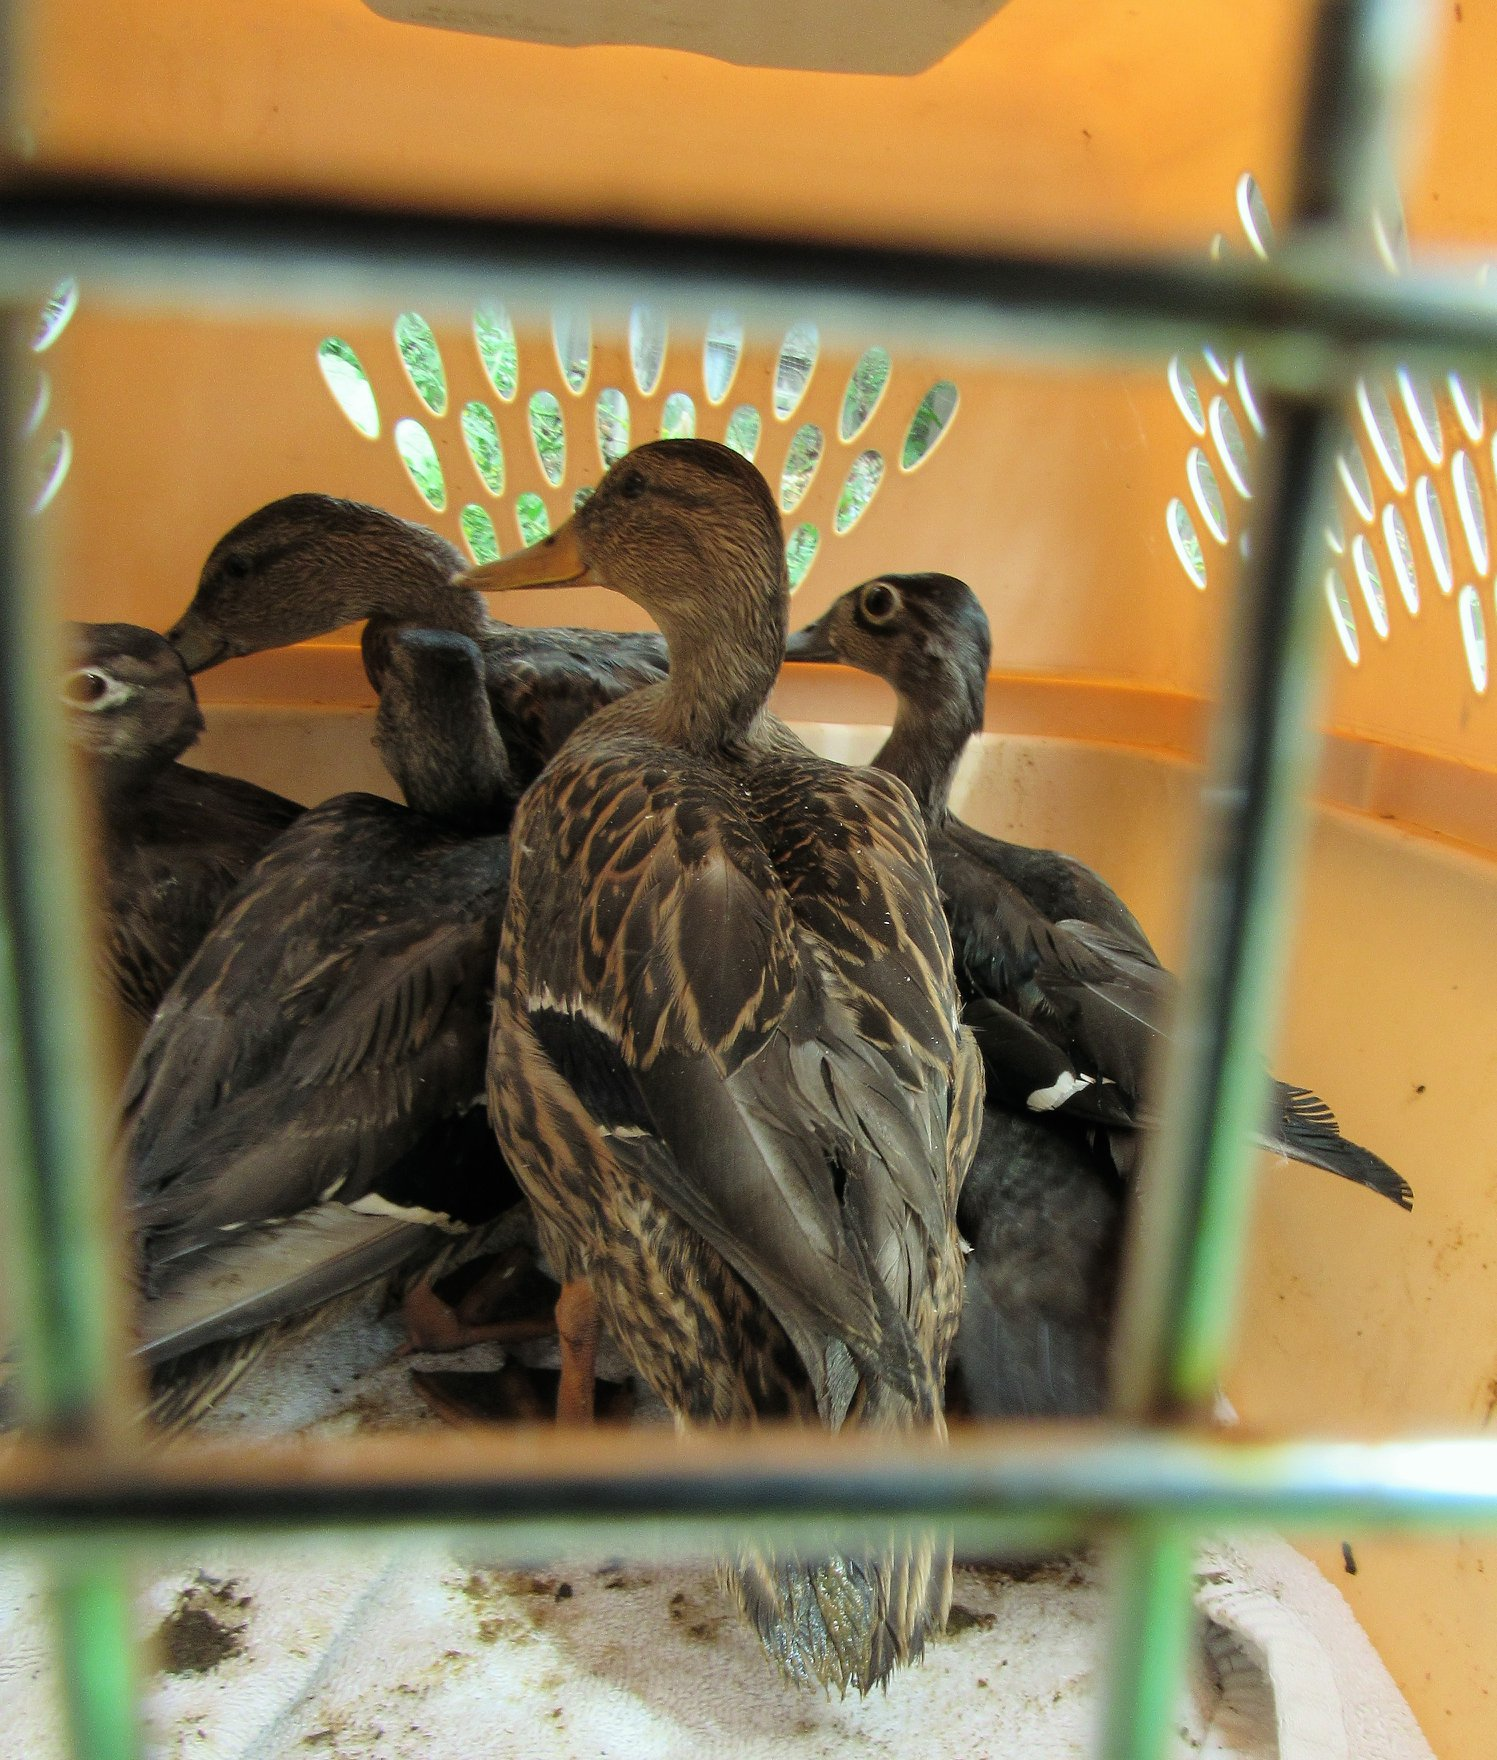 One more carrier with ducks on their way to release.